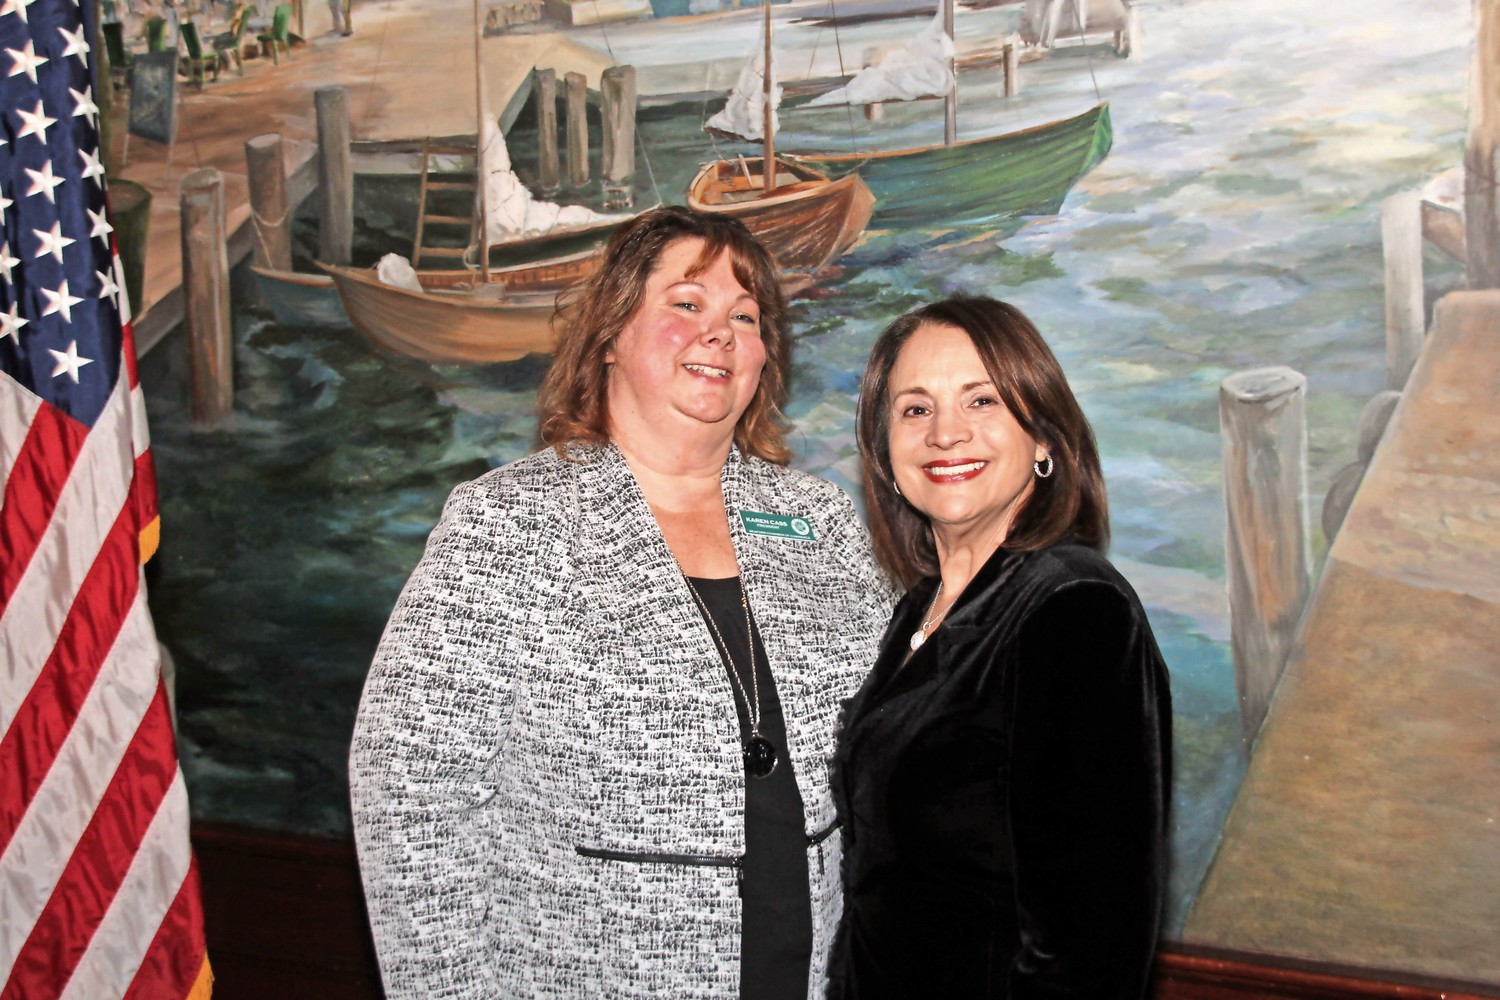 Juanita Duran, of Majestic Salon & Spa, congratulated Karen Cass, of EXIT Realty Premier, left, for being named president of the Seaford Chamber of Commerce.